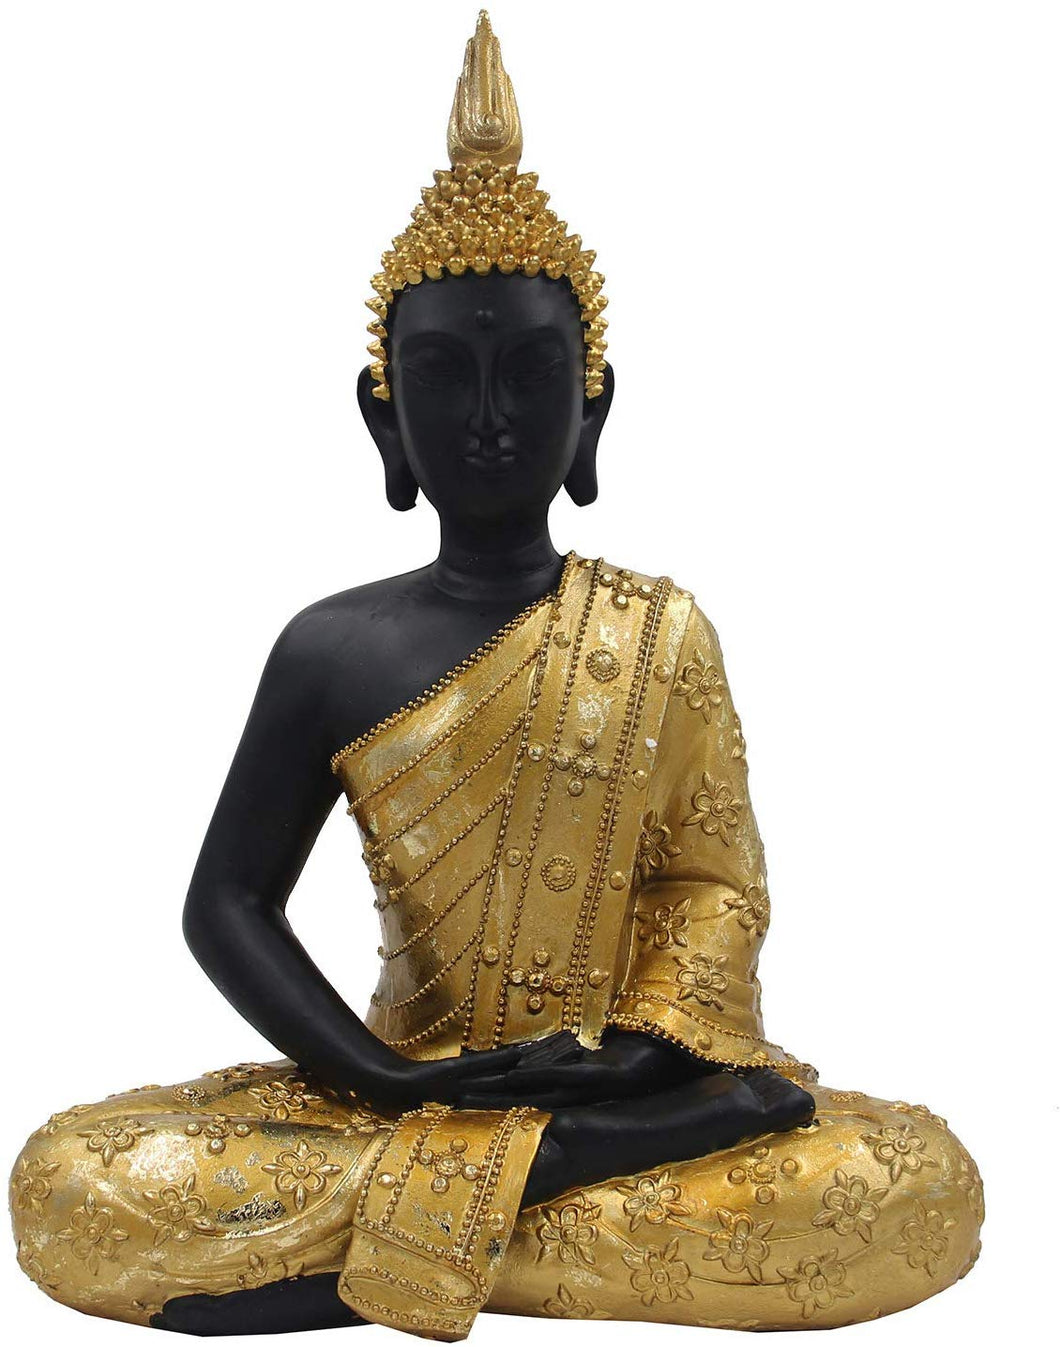 Meditating Buddha Statue Zen Mindfulness Peace Harmony (Gold, 16 Inches) - DharmaObjects